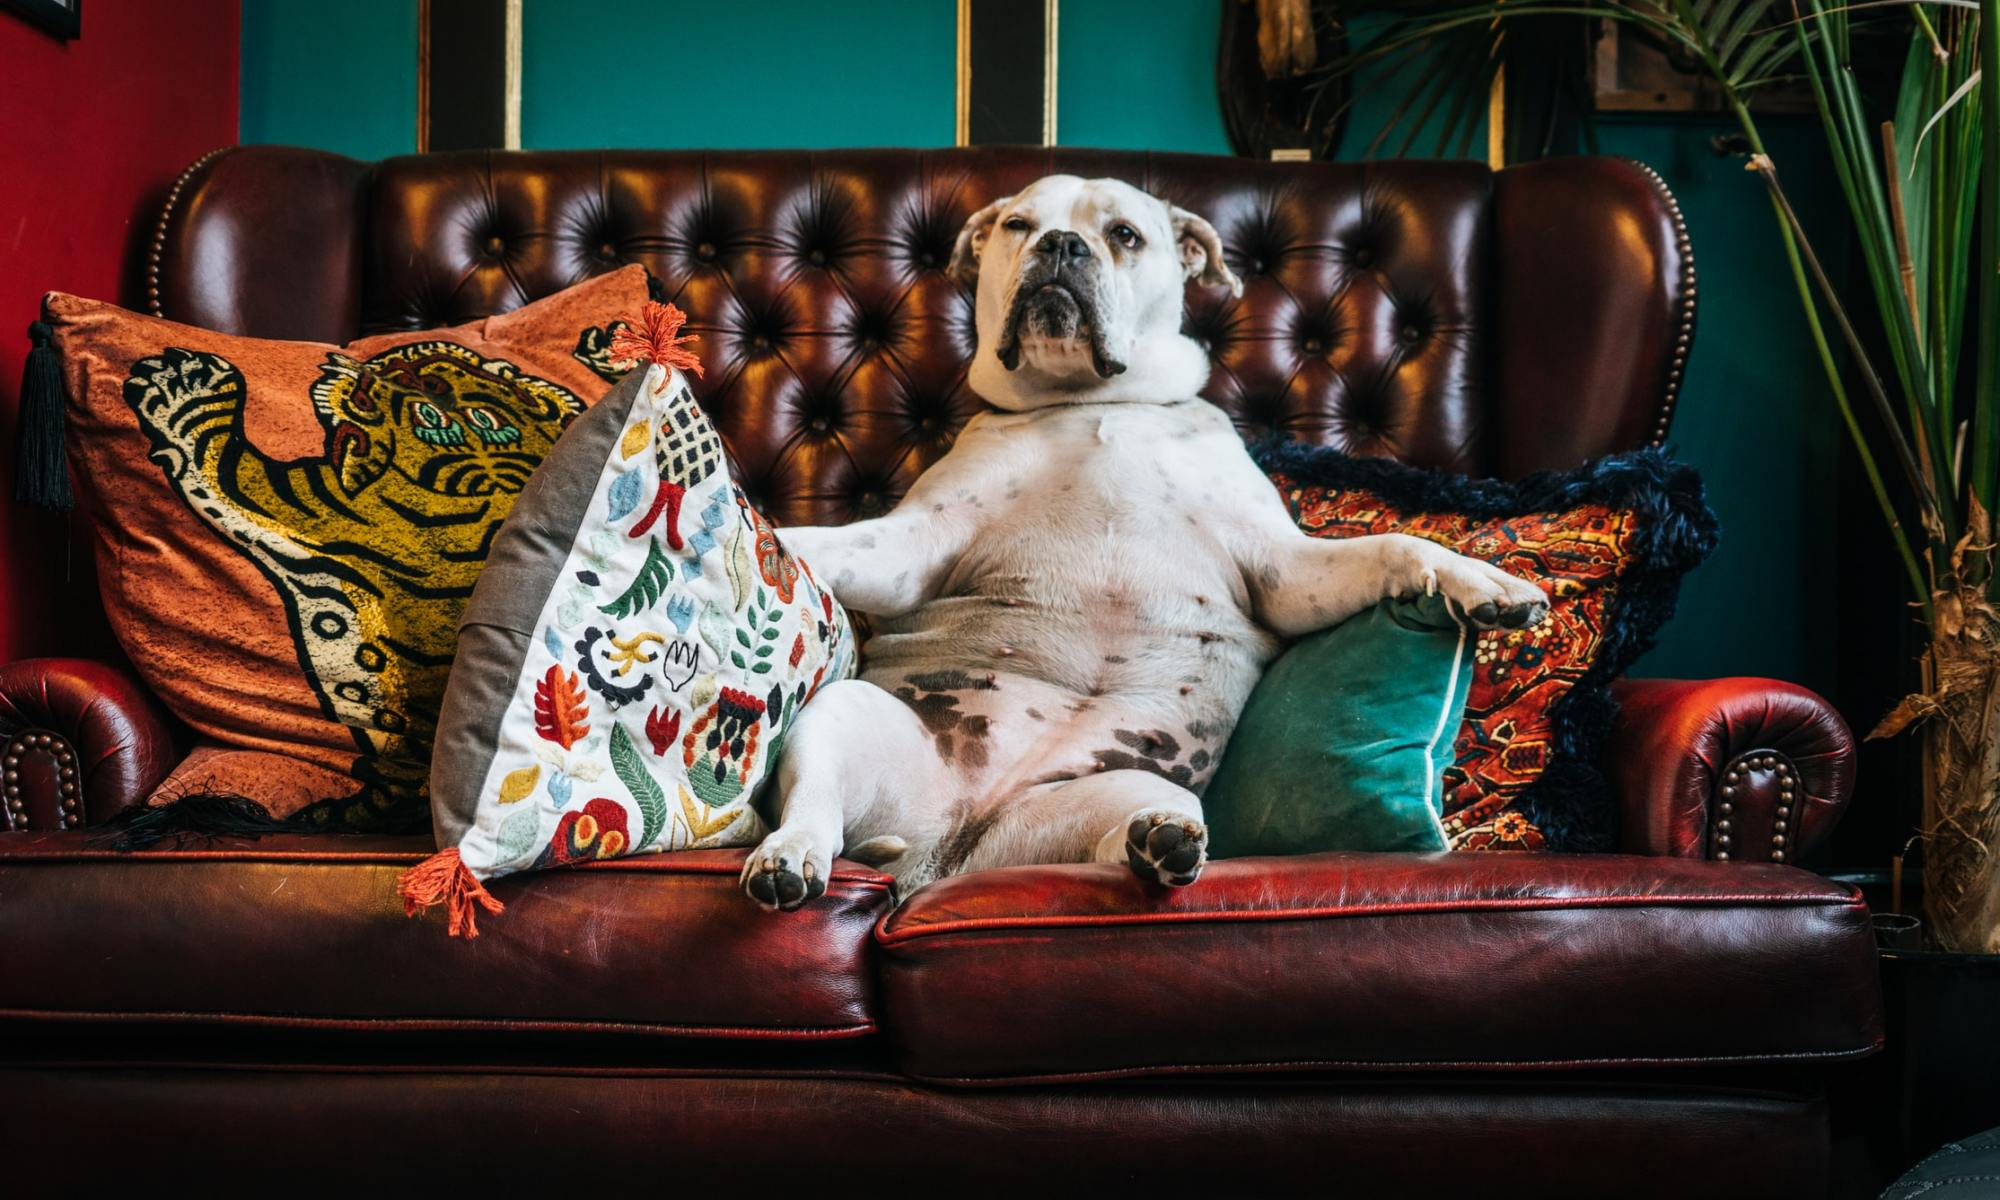 Lazy adult American bulldog sitting on brown leather couch with pillows